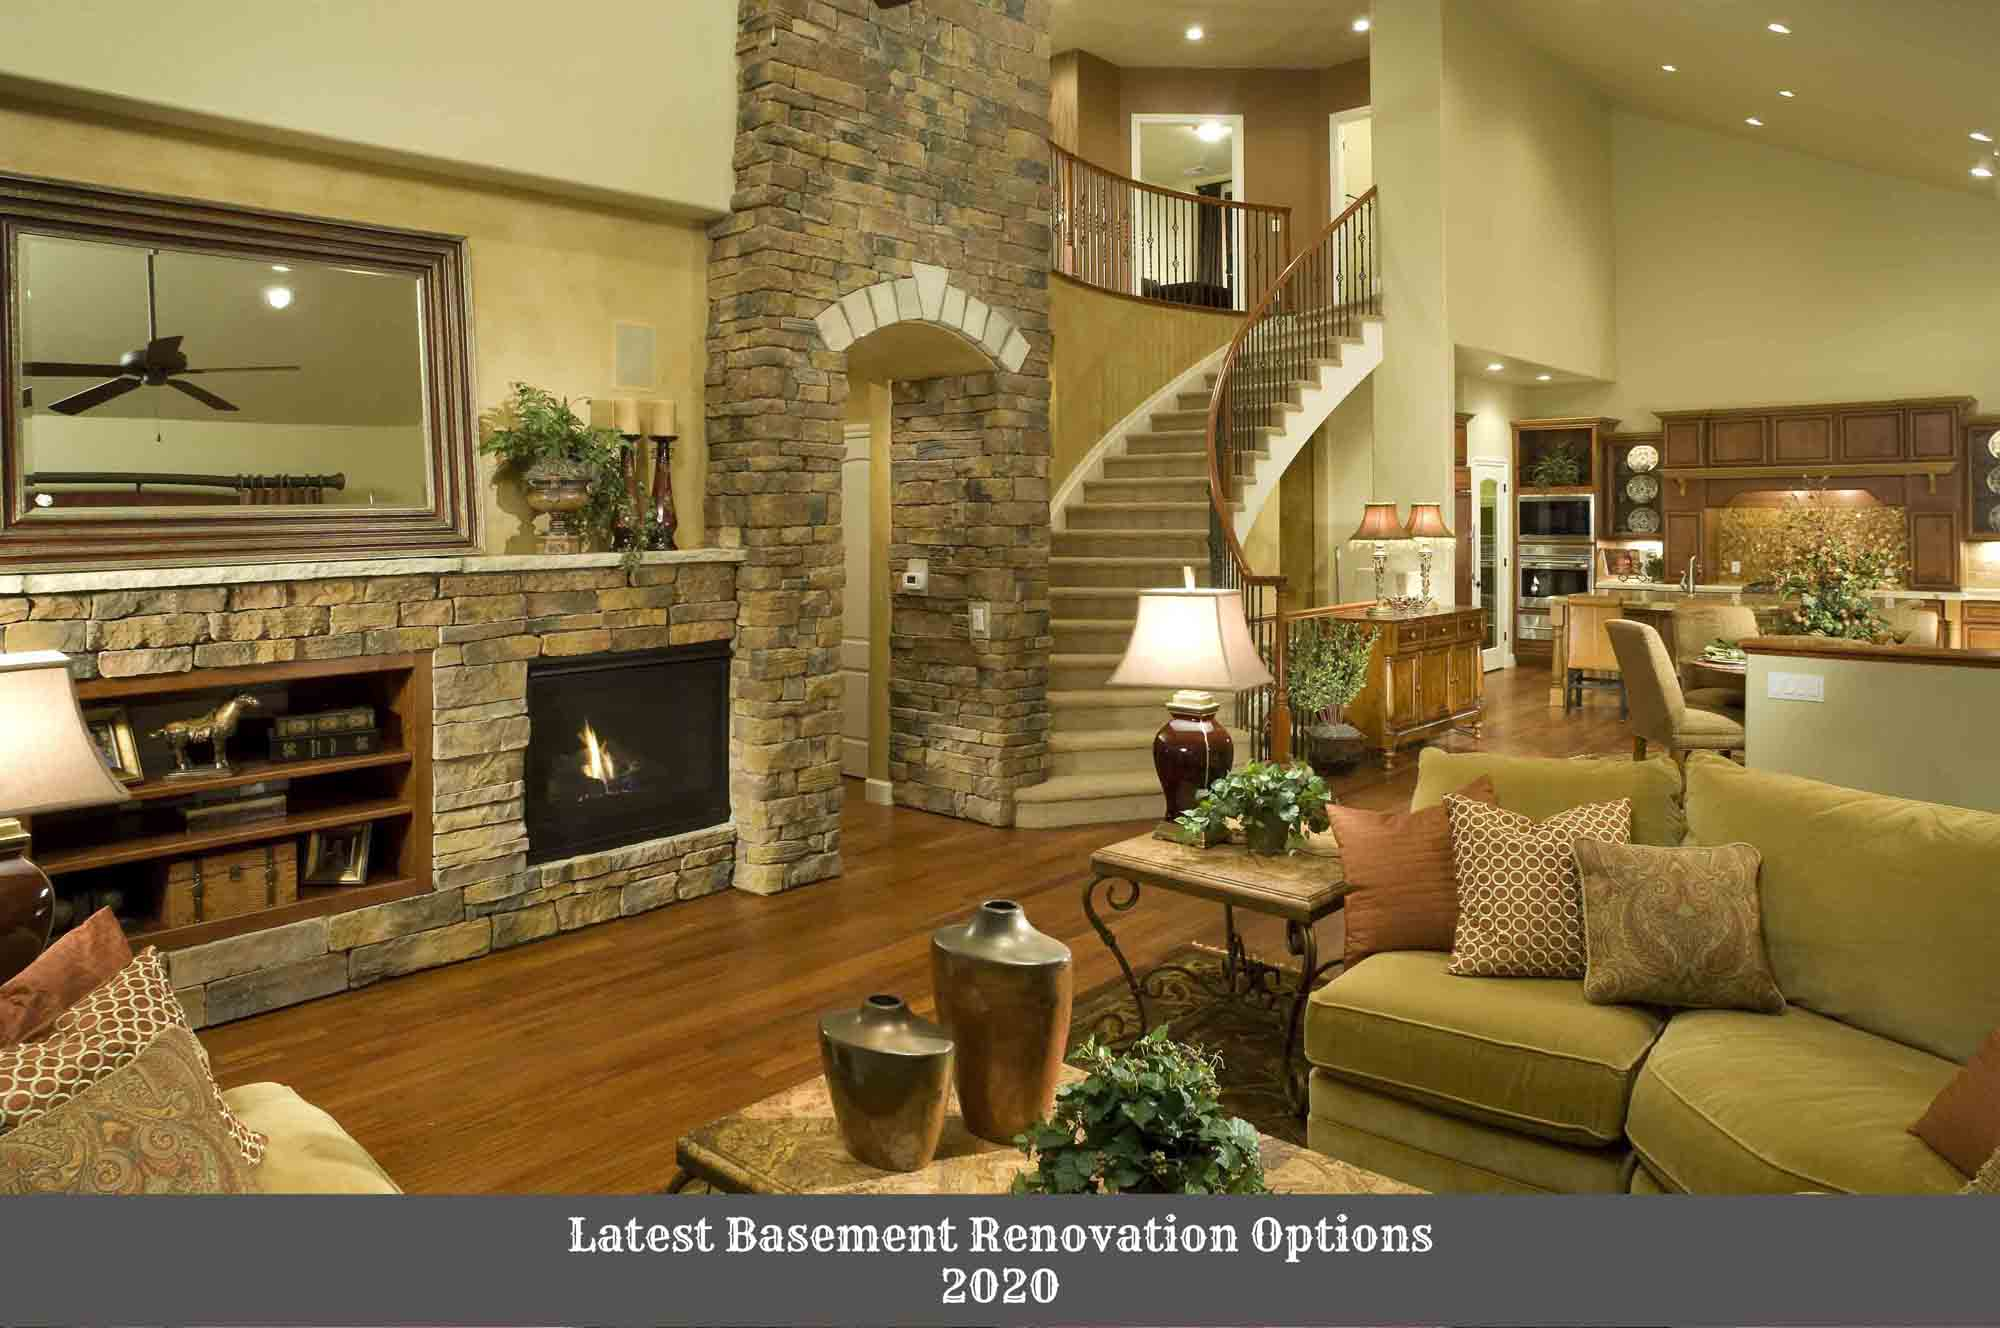 Basement Renovation Options